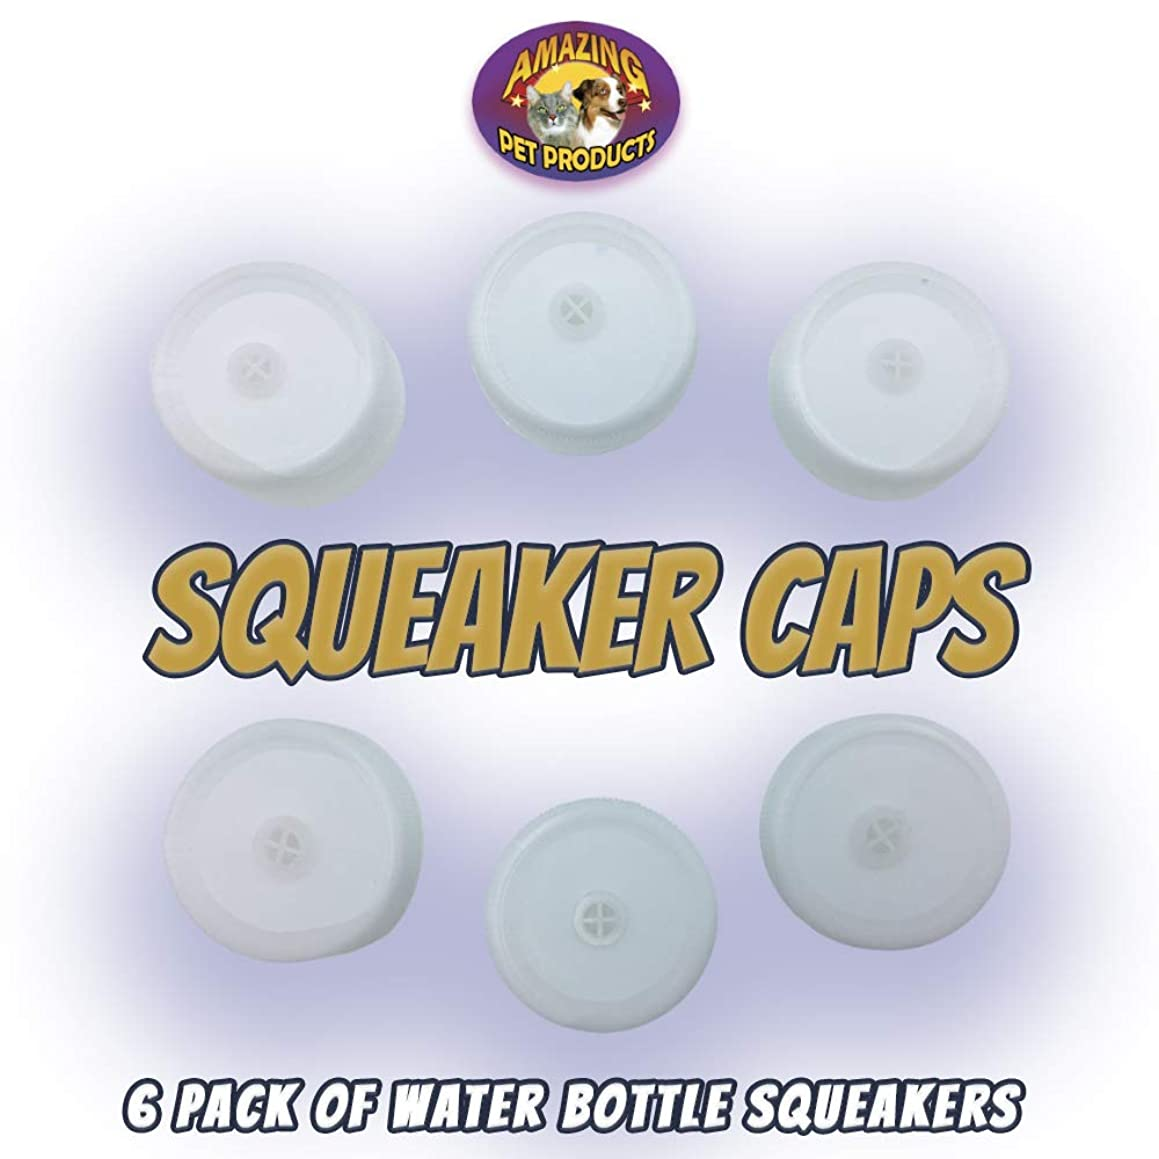 6 Pack of Squeaker Caps for Amazing Pet Bottle Shaggies Fits Most Plastic Bottles